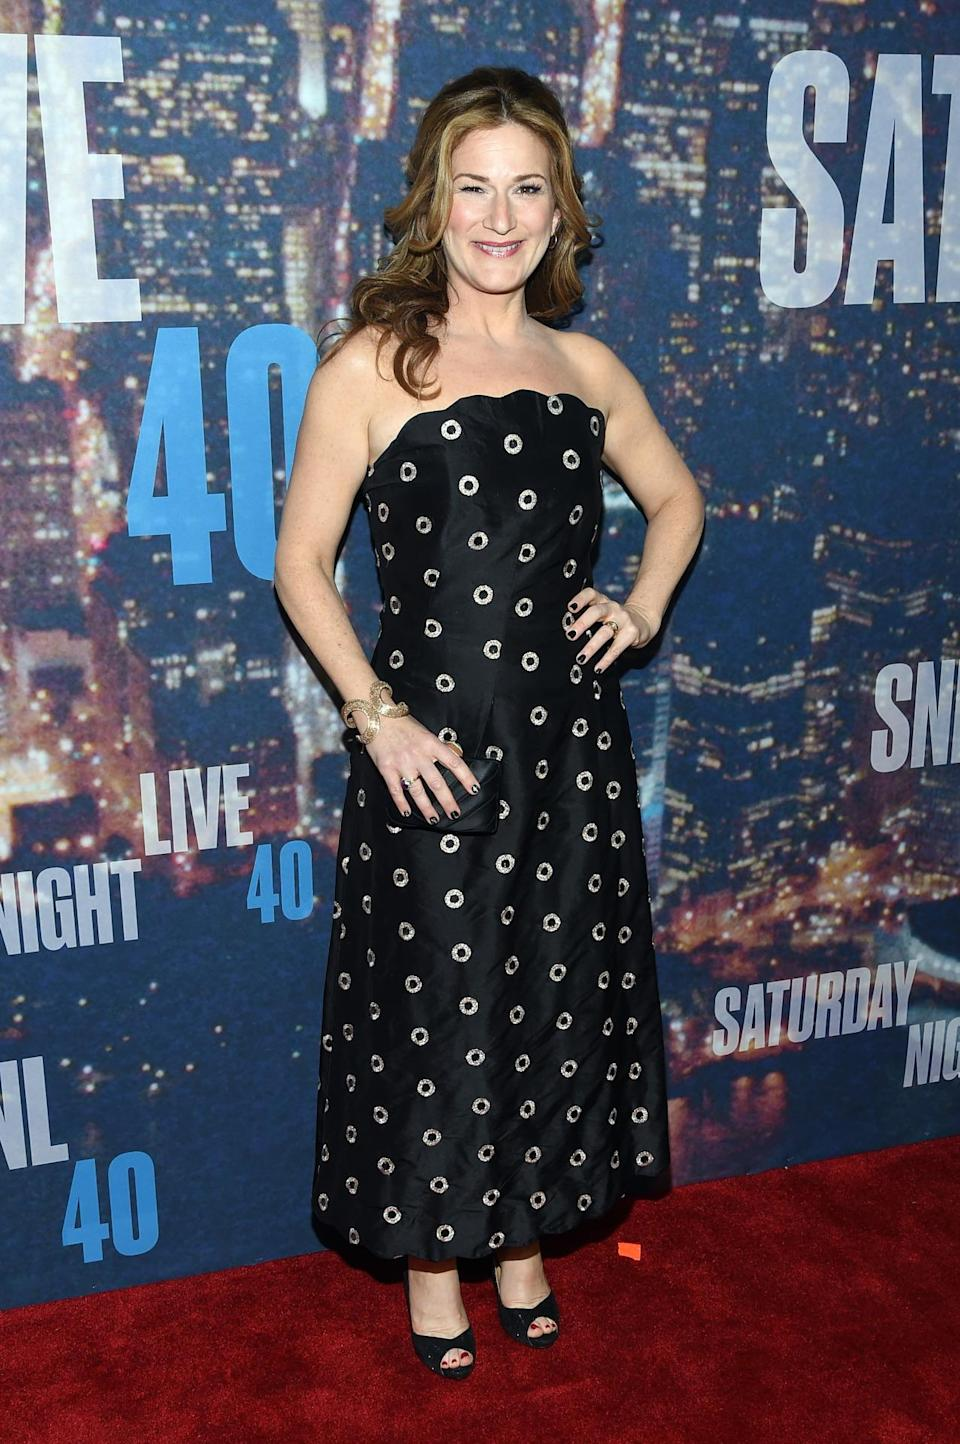 Actress Ana Gasteyer sticks with basic black but the midi hemline and print make it stand out from the rest of the black dresses of the night.